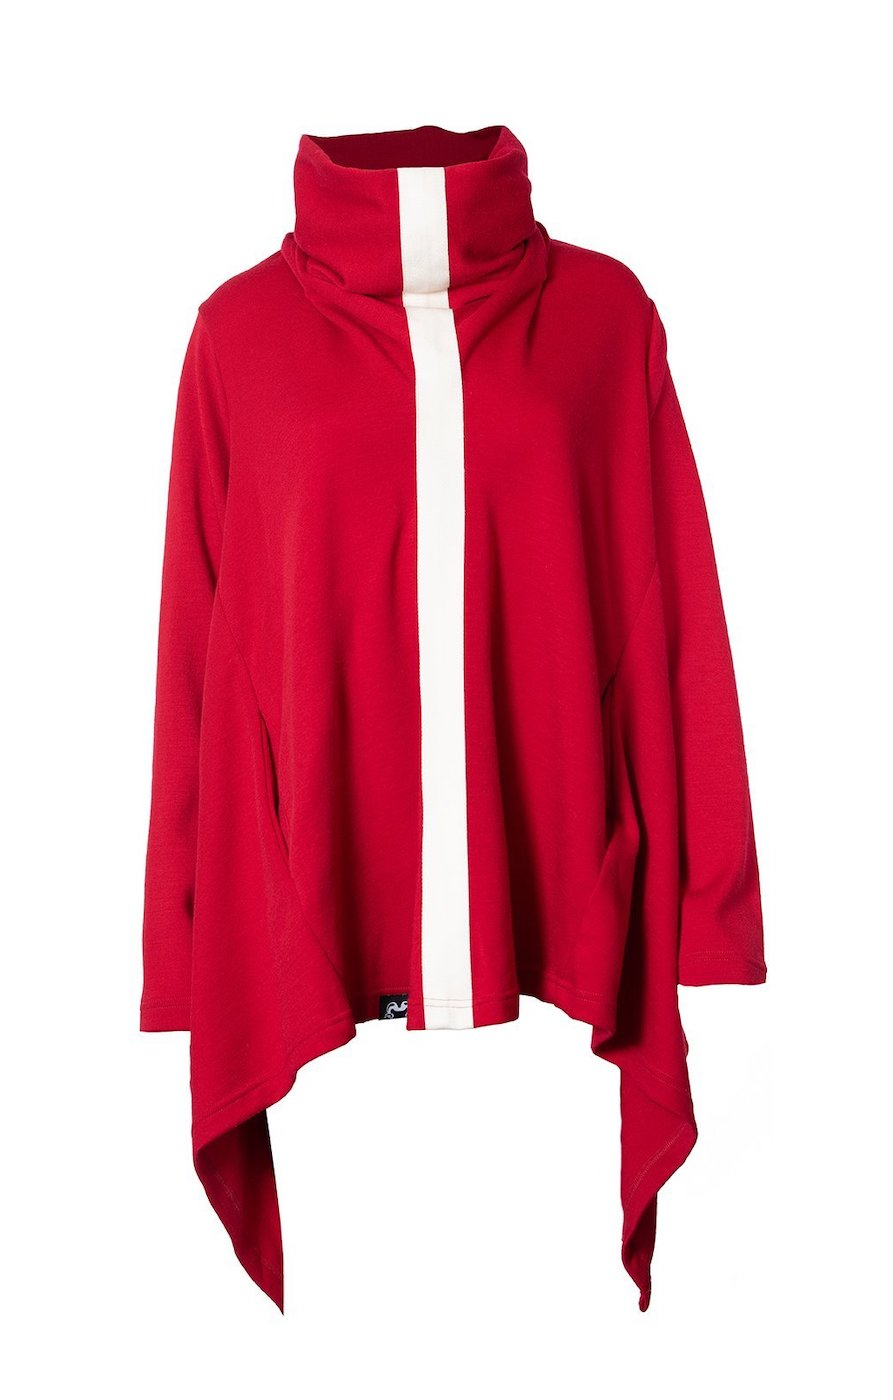 True Fleece Women's merino wool poncho